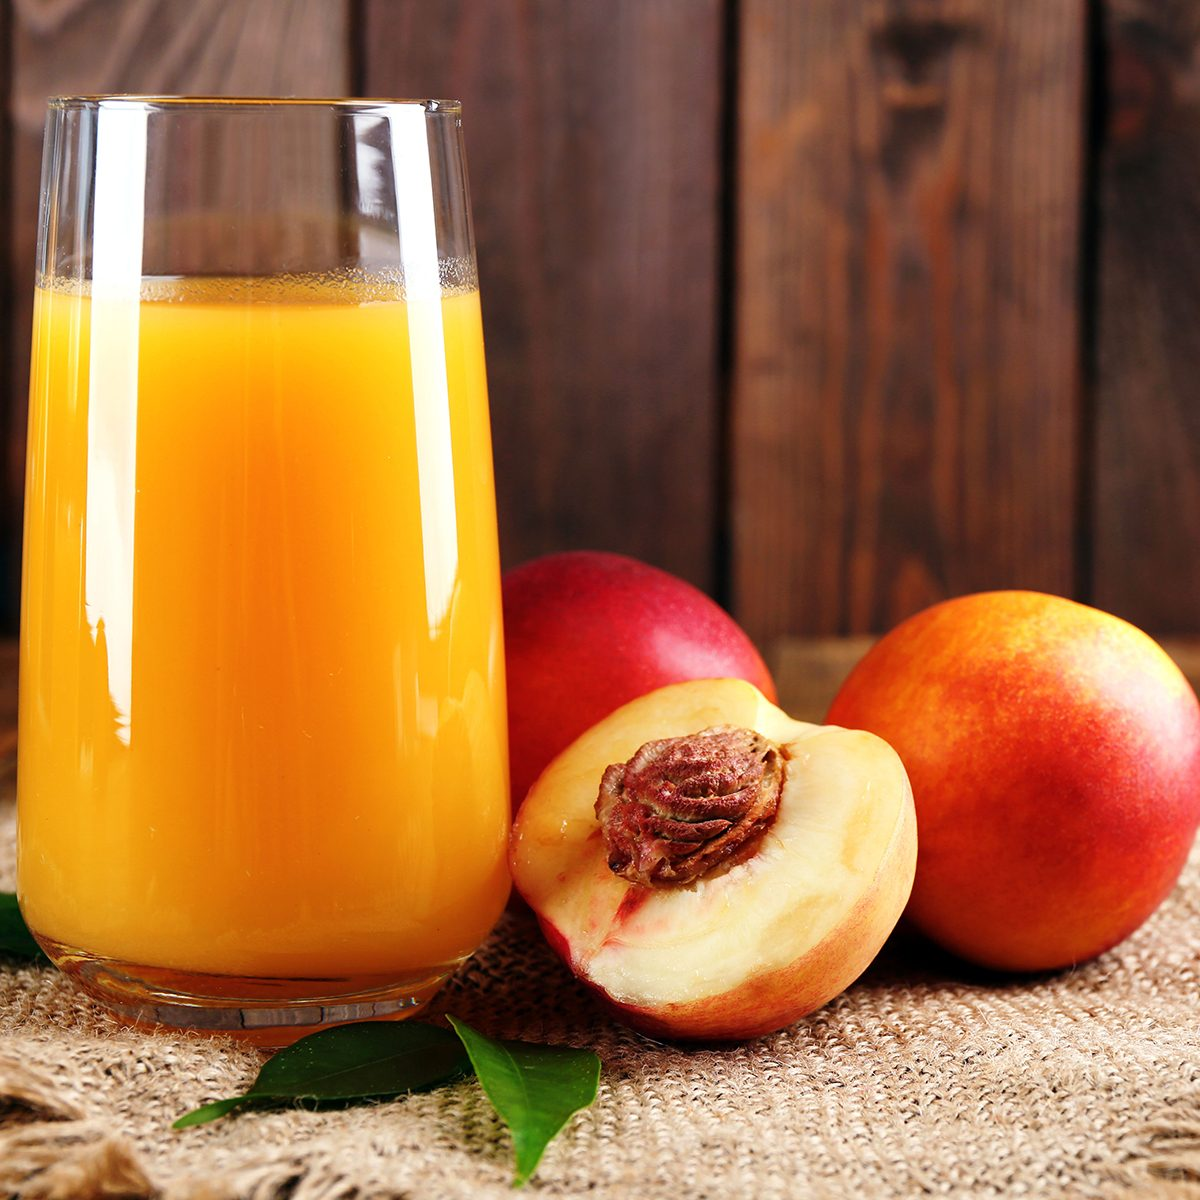 Ripe peaches and glass of juice on wooden background